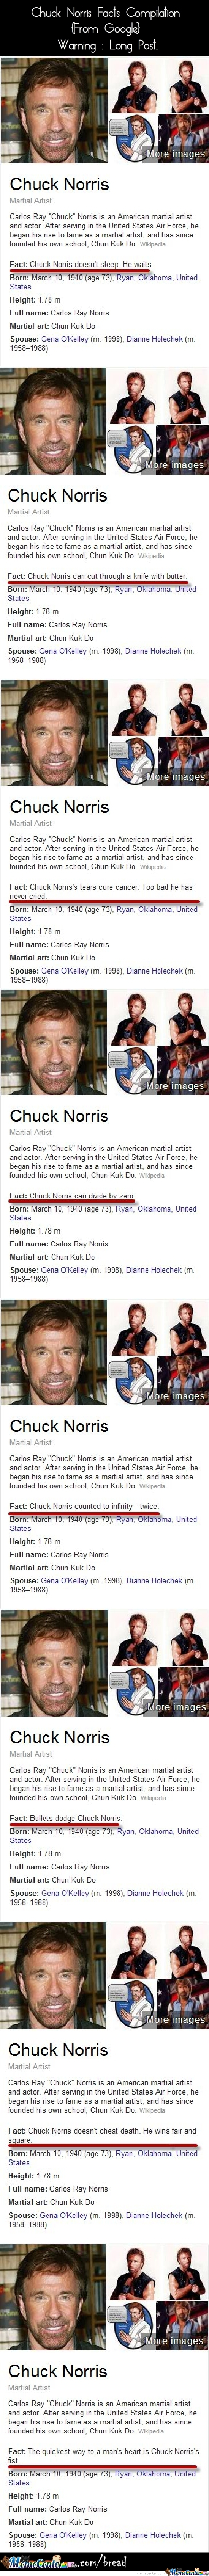 Chuck Norris Facts Compilation